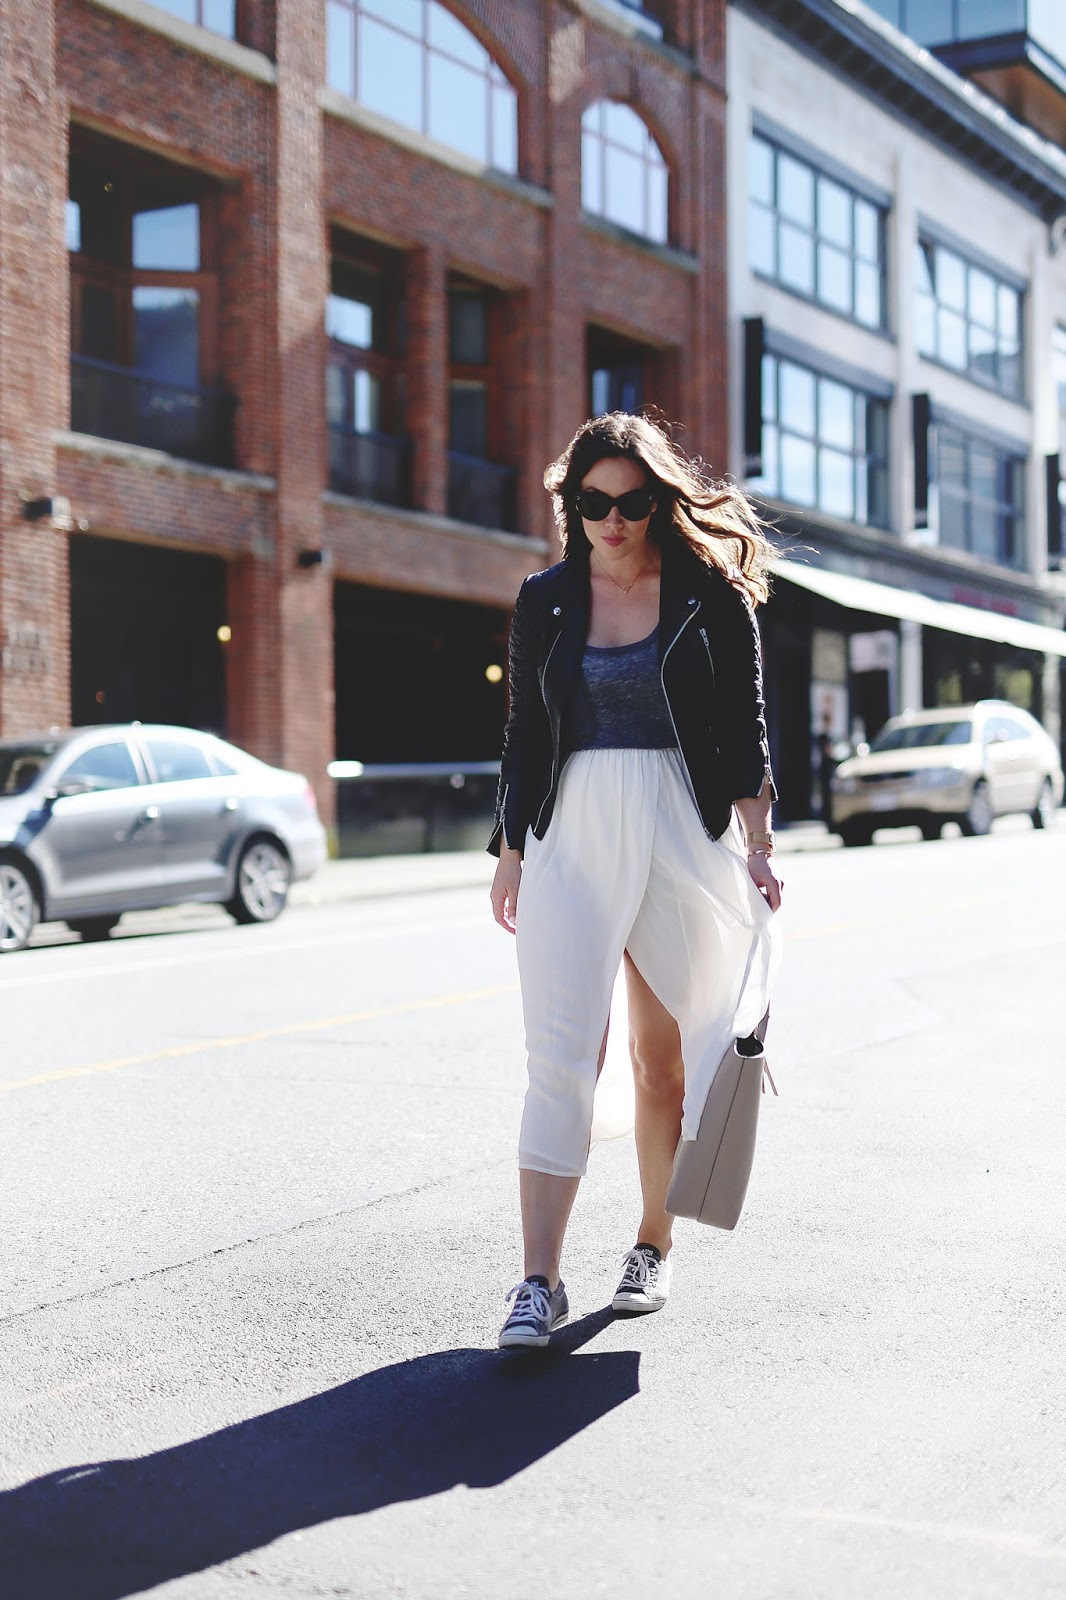 to vogue or bust, vancouver style blog, vancouver fashion blog, vancouver lifestyle blog, vancouver travel blog, vancouver fitness blog, vancouver health blog, canadian fashion blog, canadian style blog, canadian lifestyle blog, canadian travel blog, canadian fitness blog, canadian health blog, popular fashion blog, popular style blog, popular travel blog, best fashion blogs, best style blogs, best travel blogs, best fitness blogs, best health blogs, best lifestyle blogs, top travel blogs, top style blogs, top fashion blogs, top fitness blogs, top health blogs, alexandra grant, aritzia silk skirt, walter baker leather jacket, celine caty sunglasses, z supply tank top, converse sneakers, how to style converse sneakers, how to wear converse sneakers and a skirt together, how to wear leather jacket and skirt together, how to pose for pictures, how to take walking pictures, how to pose like a blogger, how to take good pictures, how to be photogenic, how to pose for a photoshoot, how to pose for pictures like a model, how to smile for pictures